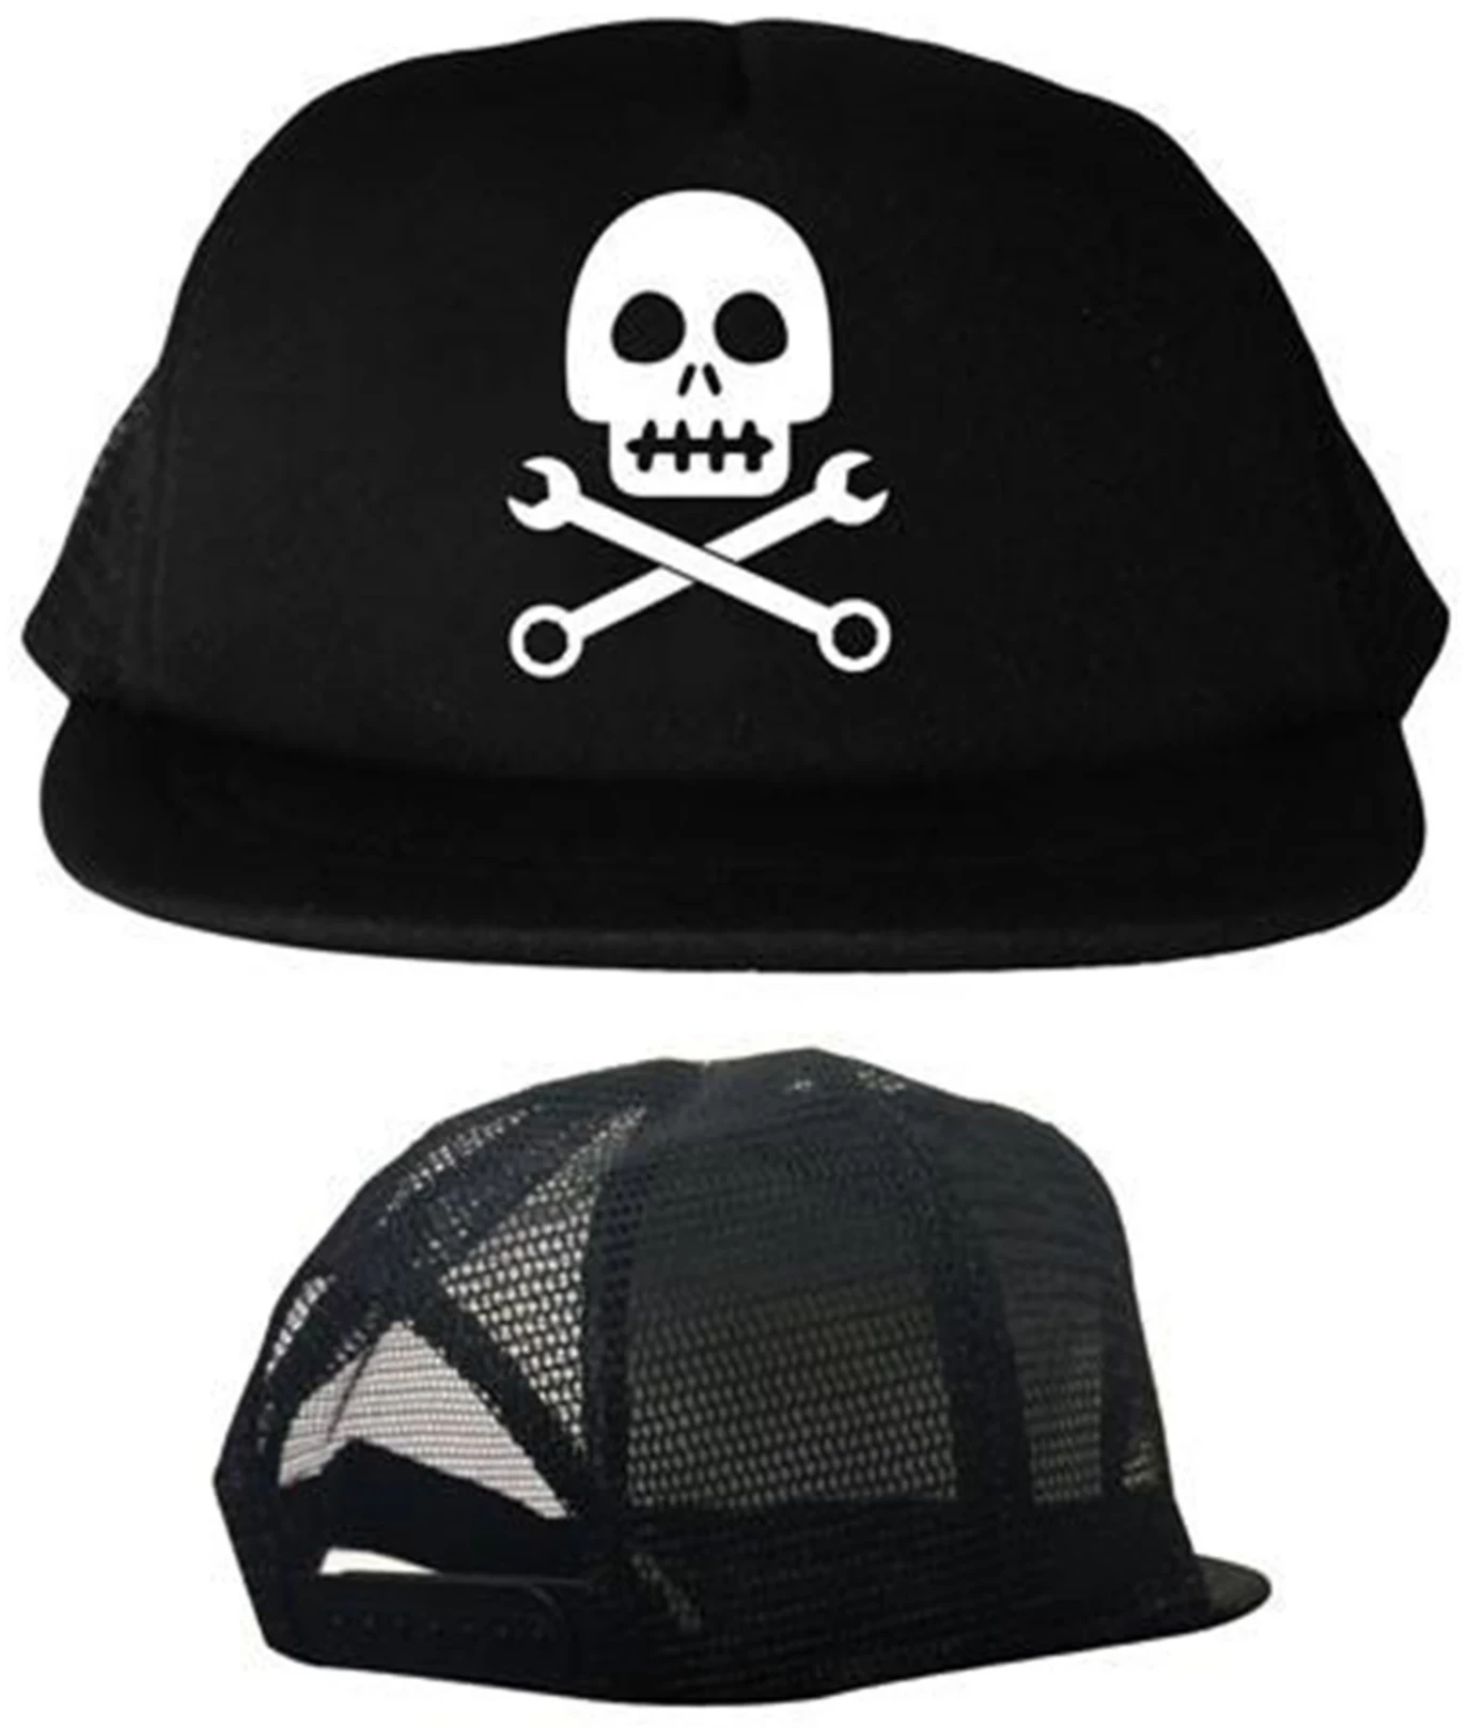 SKULLY Youth Trucker Cap